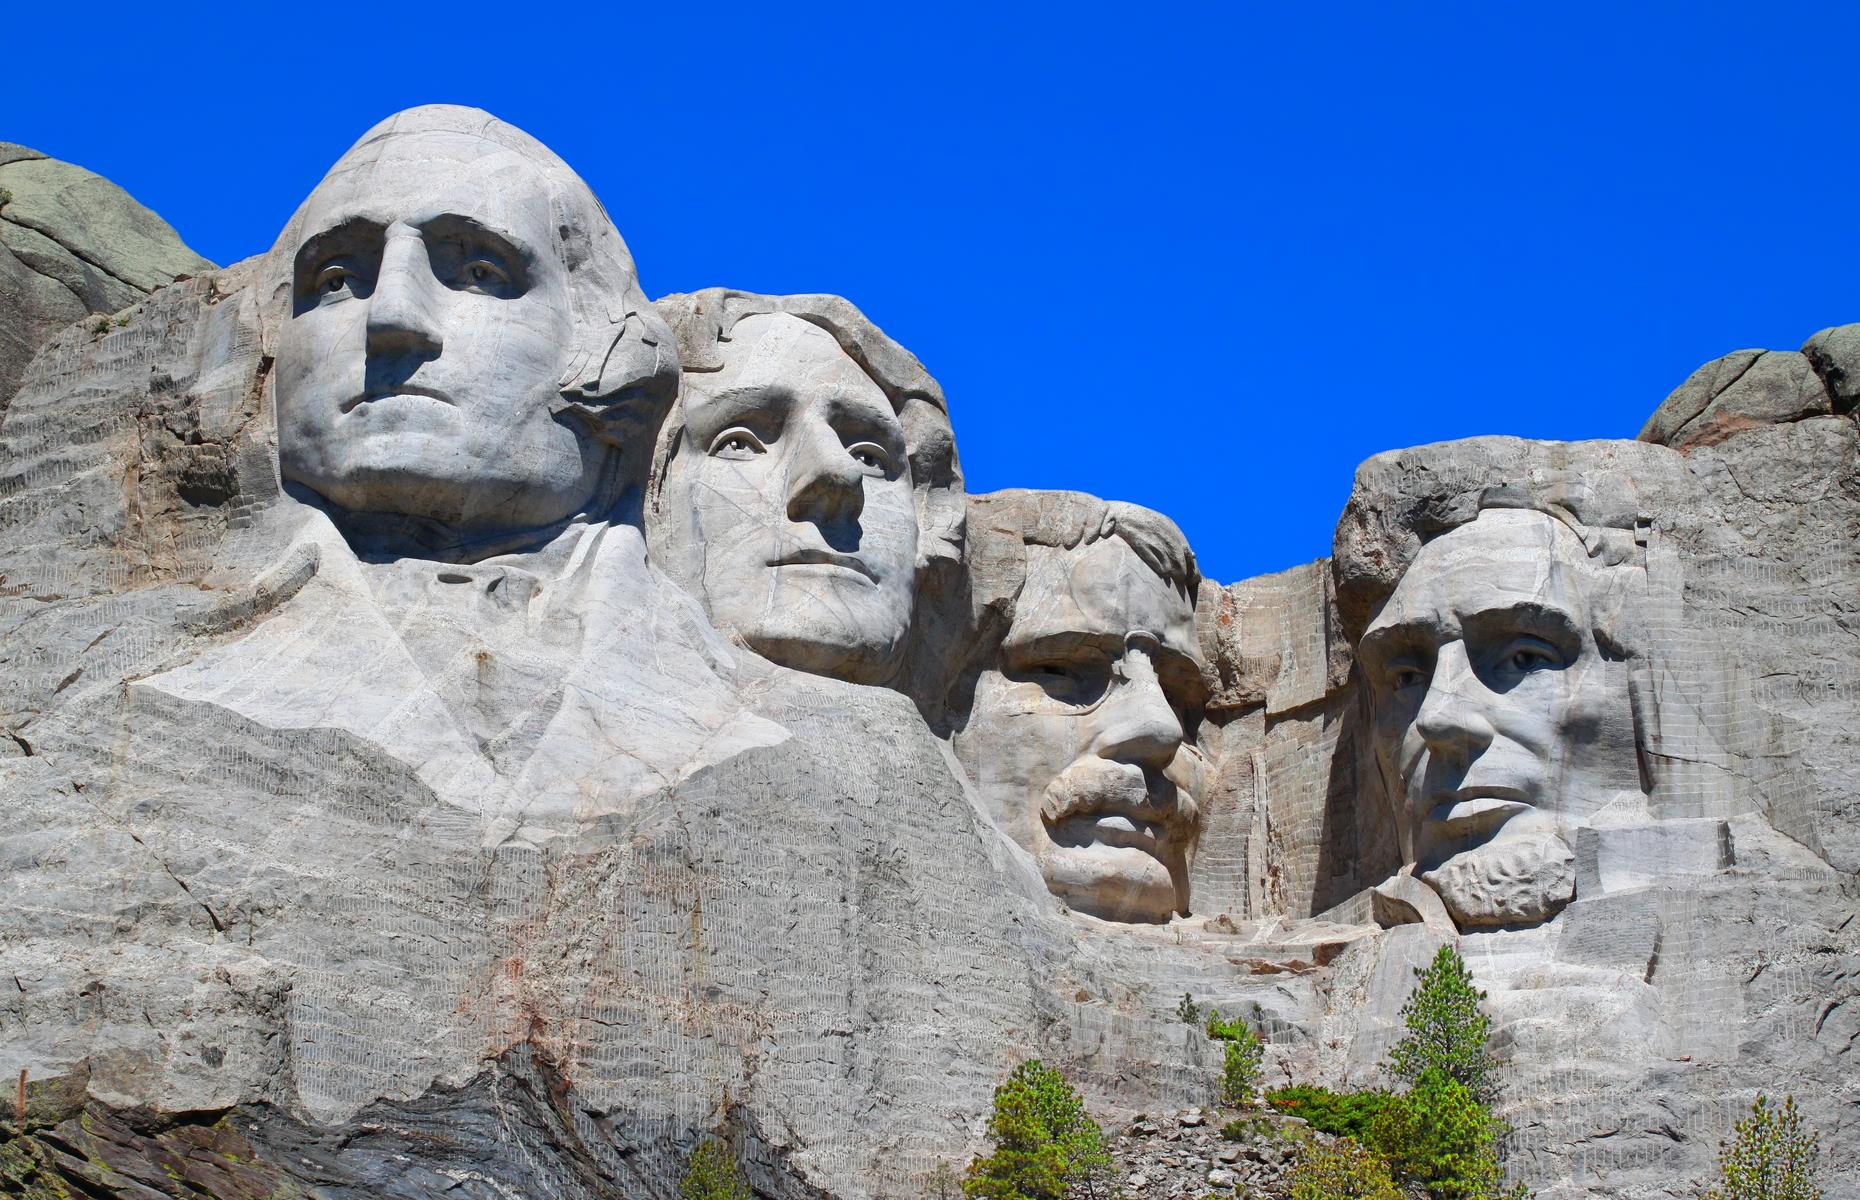 Slide 31 of 31: These gargantuan granite faces, carved into South Dakota's Mount Rushmore, are among America's best-known landmarks. But one of the stone presidents – Abraham Lincoln – harbors a secret. Inside his head, there's a hidden chamber originally built by sculptor Gutzon Borglum to hold important records and documents central to US history. Today the room contains a series of panels, inscribed with such writings as the US Constitution and the Declaration of Independence.